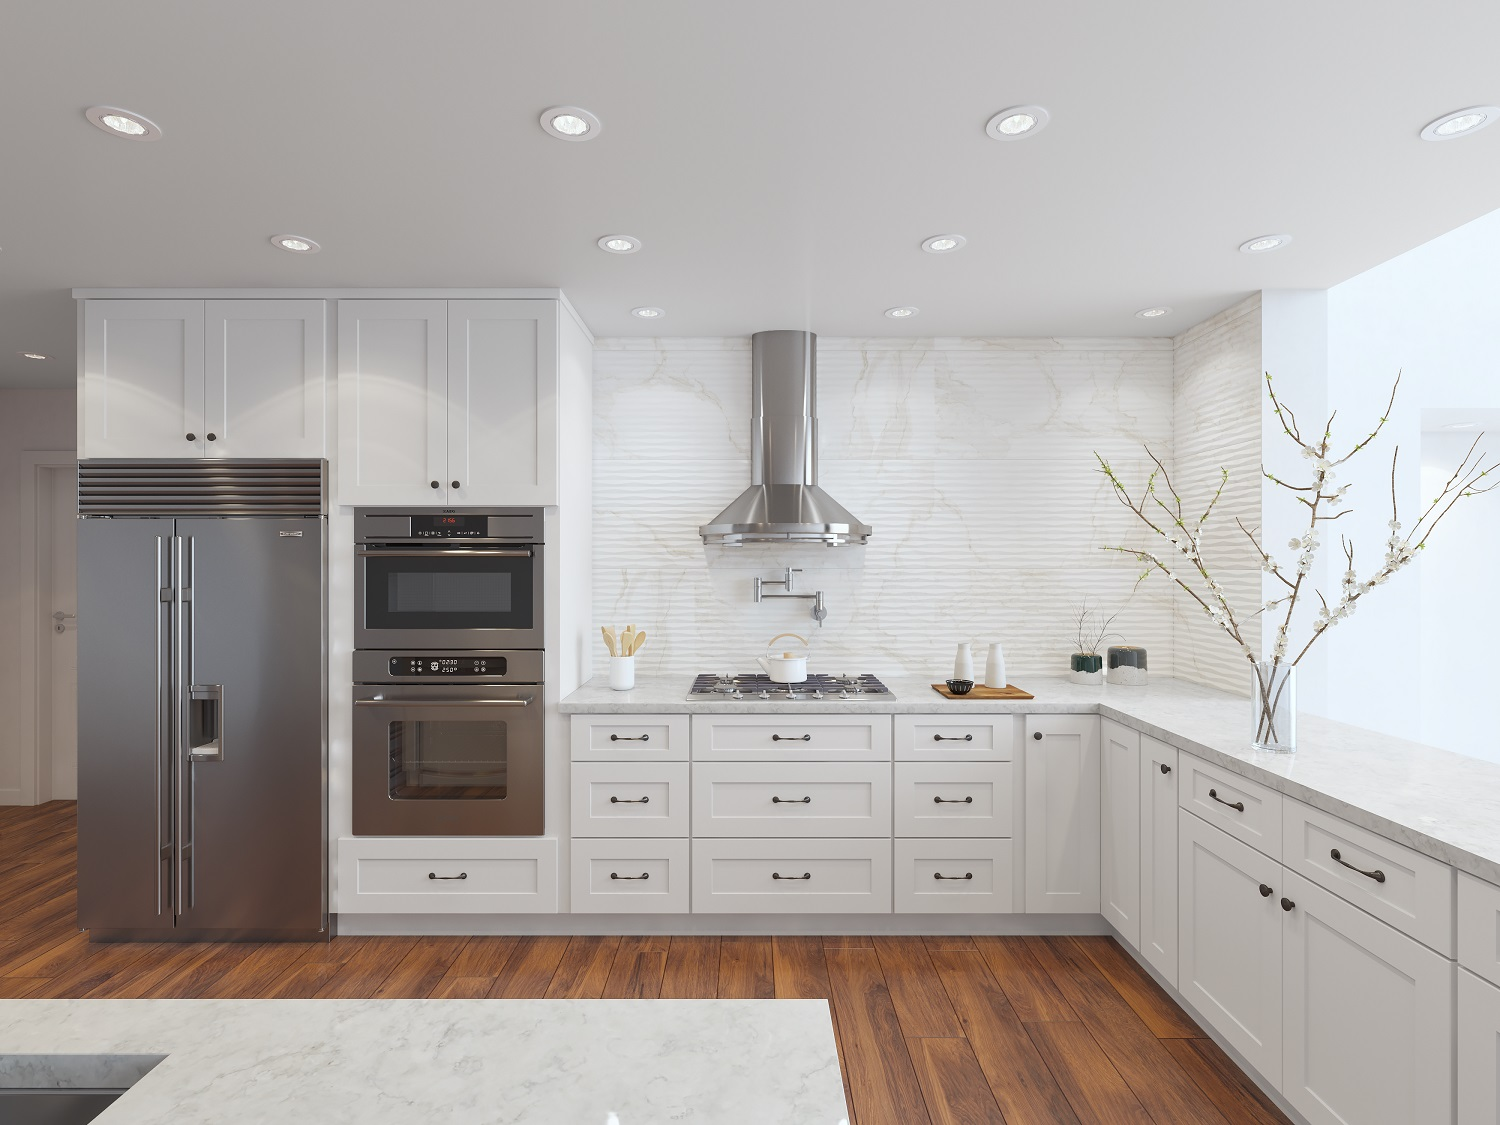 Arctic white shaker ready to assemble kitchen cabinets - Shaker kitchen designs photo gallery ...